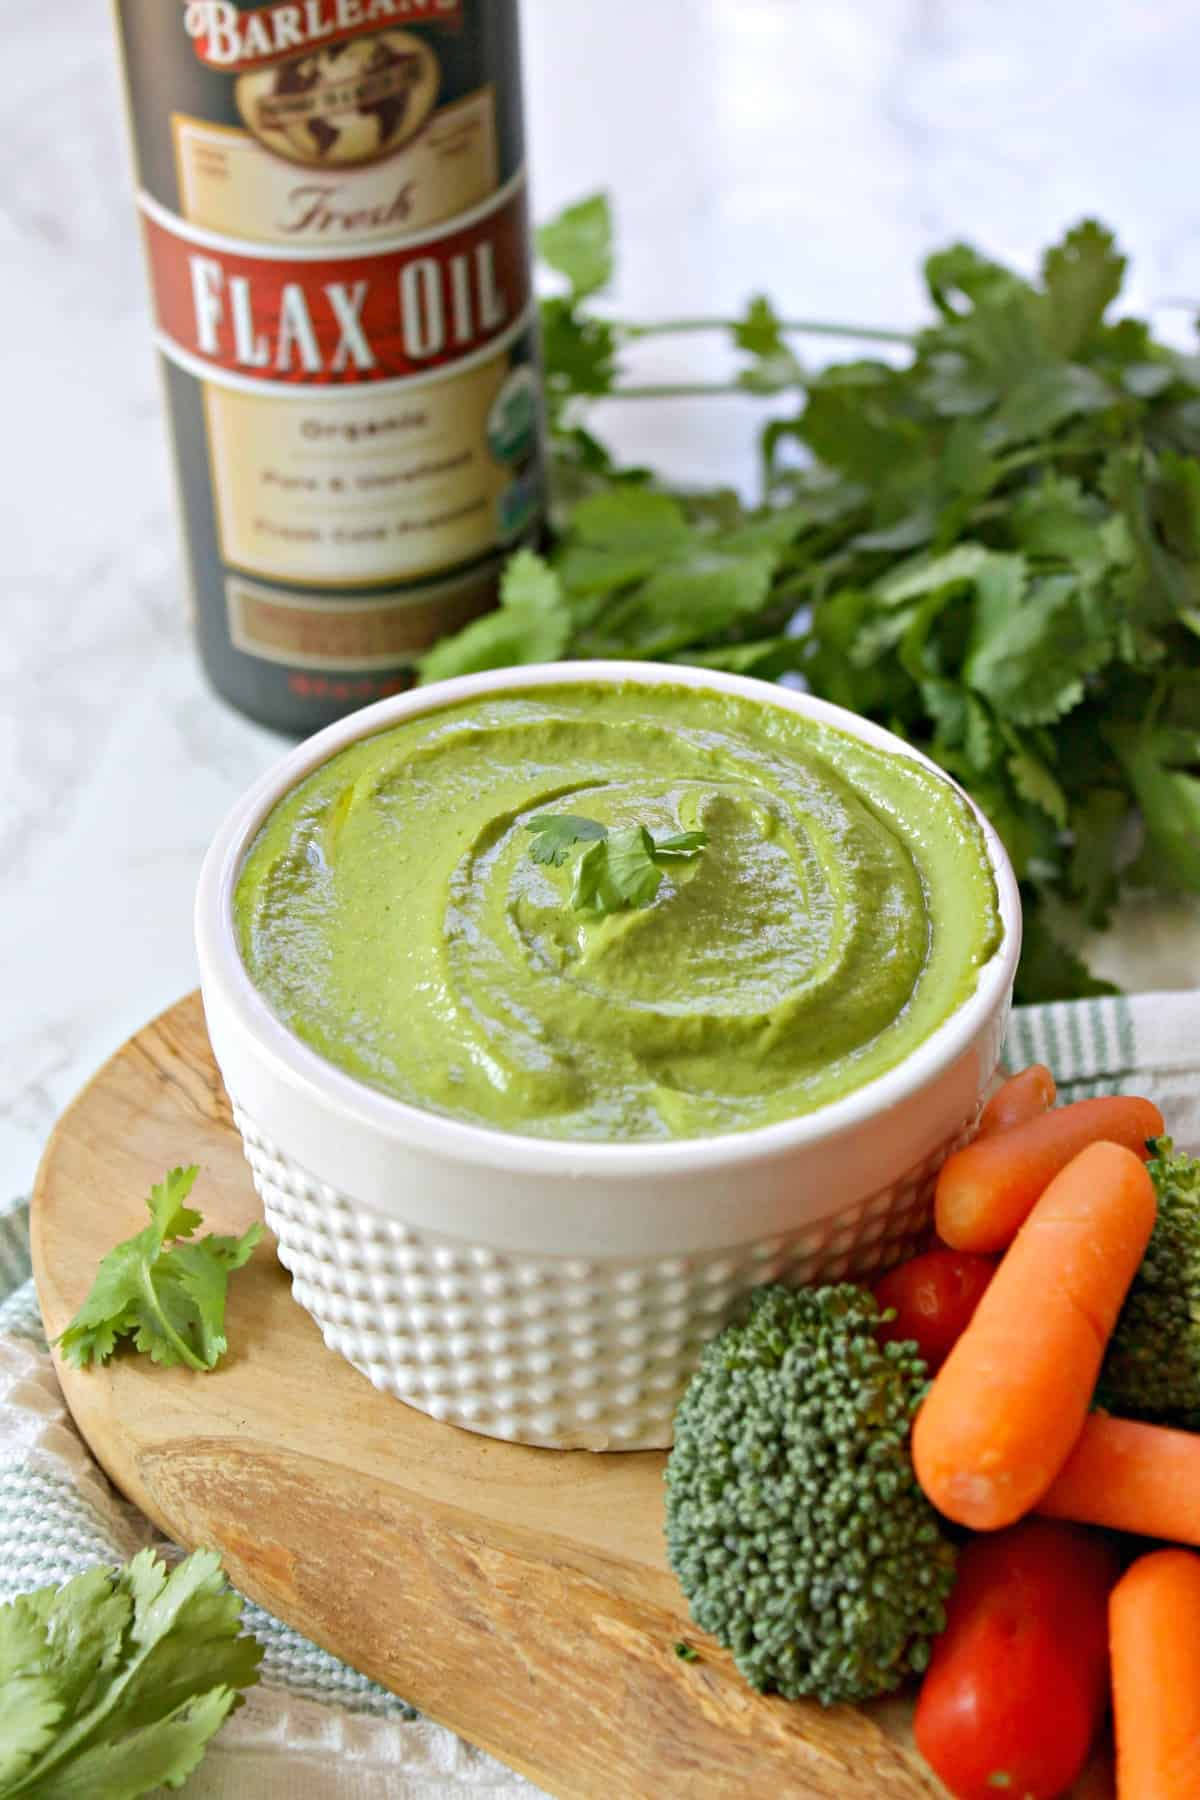 Green Tahini Spread! This delicious spread is made with tahini -- a ground sesame seed paste -- and is so versatile! Use it as a dip, spread or dressing for an unexpected creamy richness without any dairy. The addition of flax oil lends added benefits to this nutritious spread!